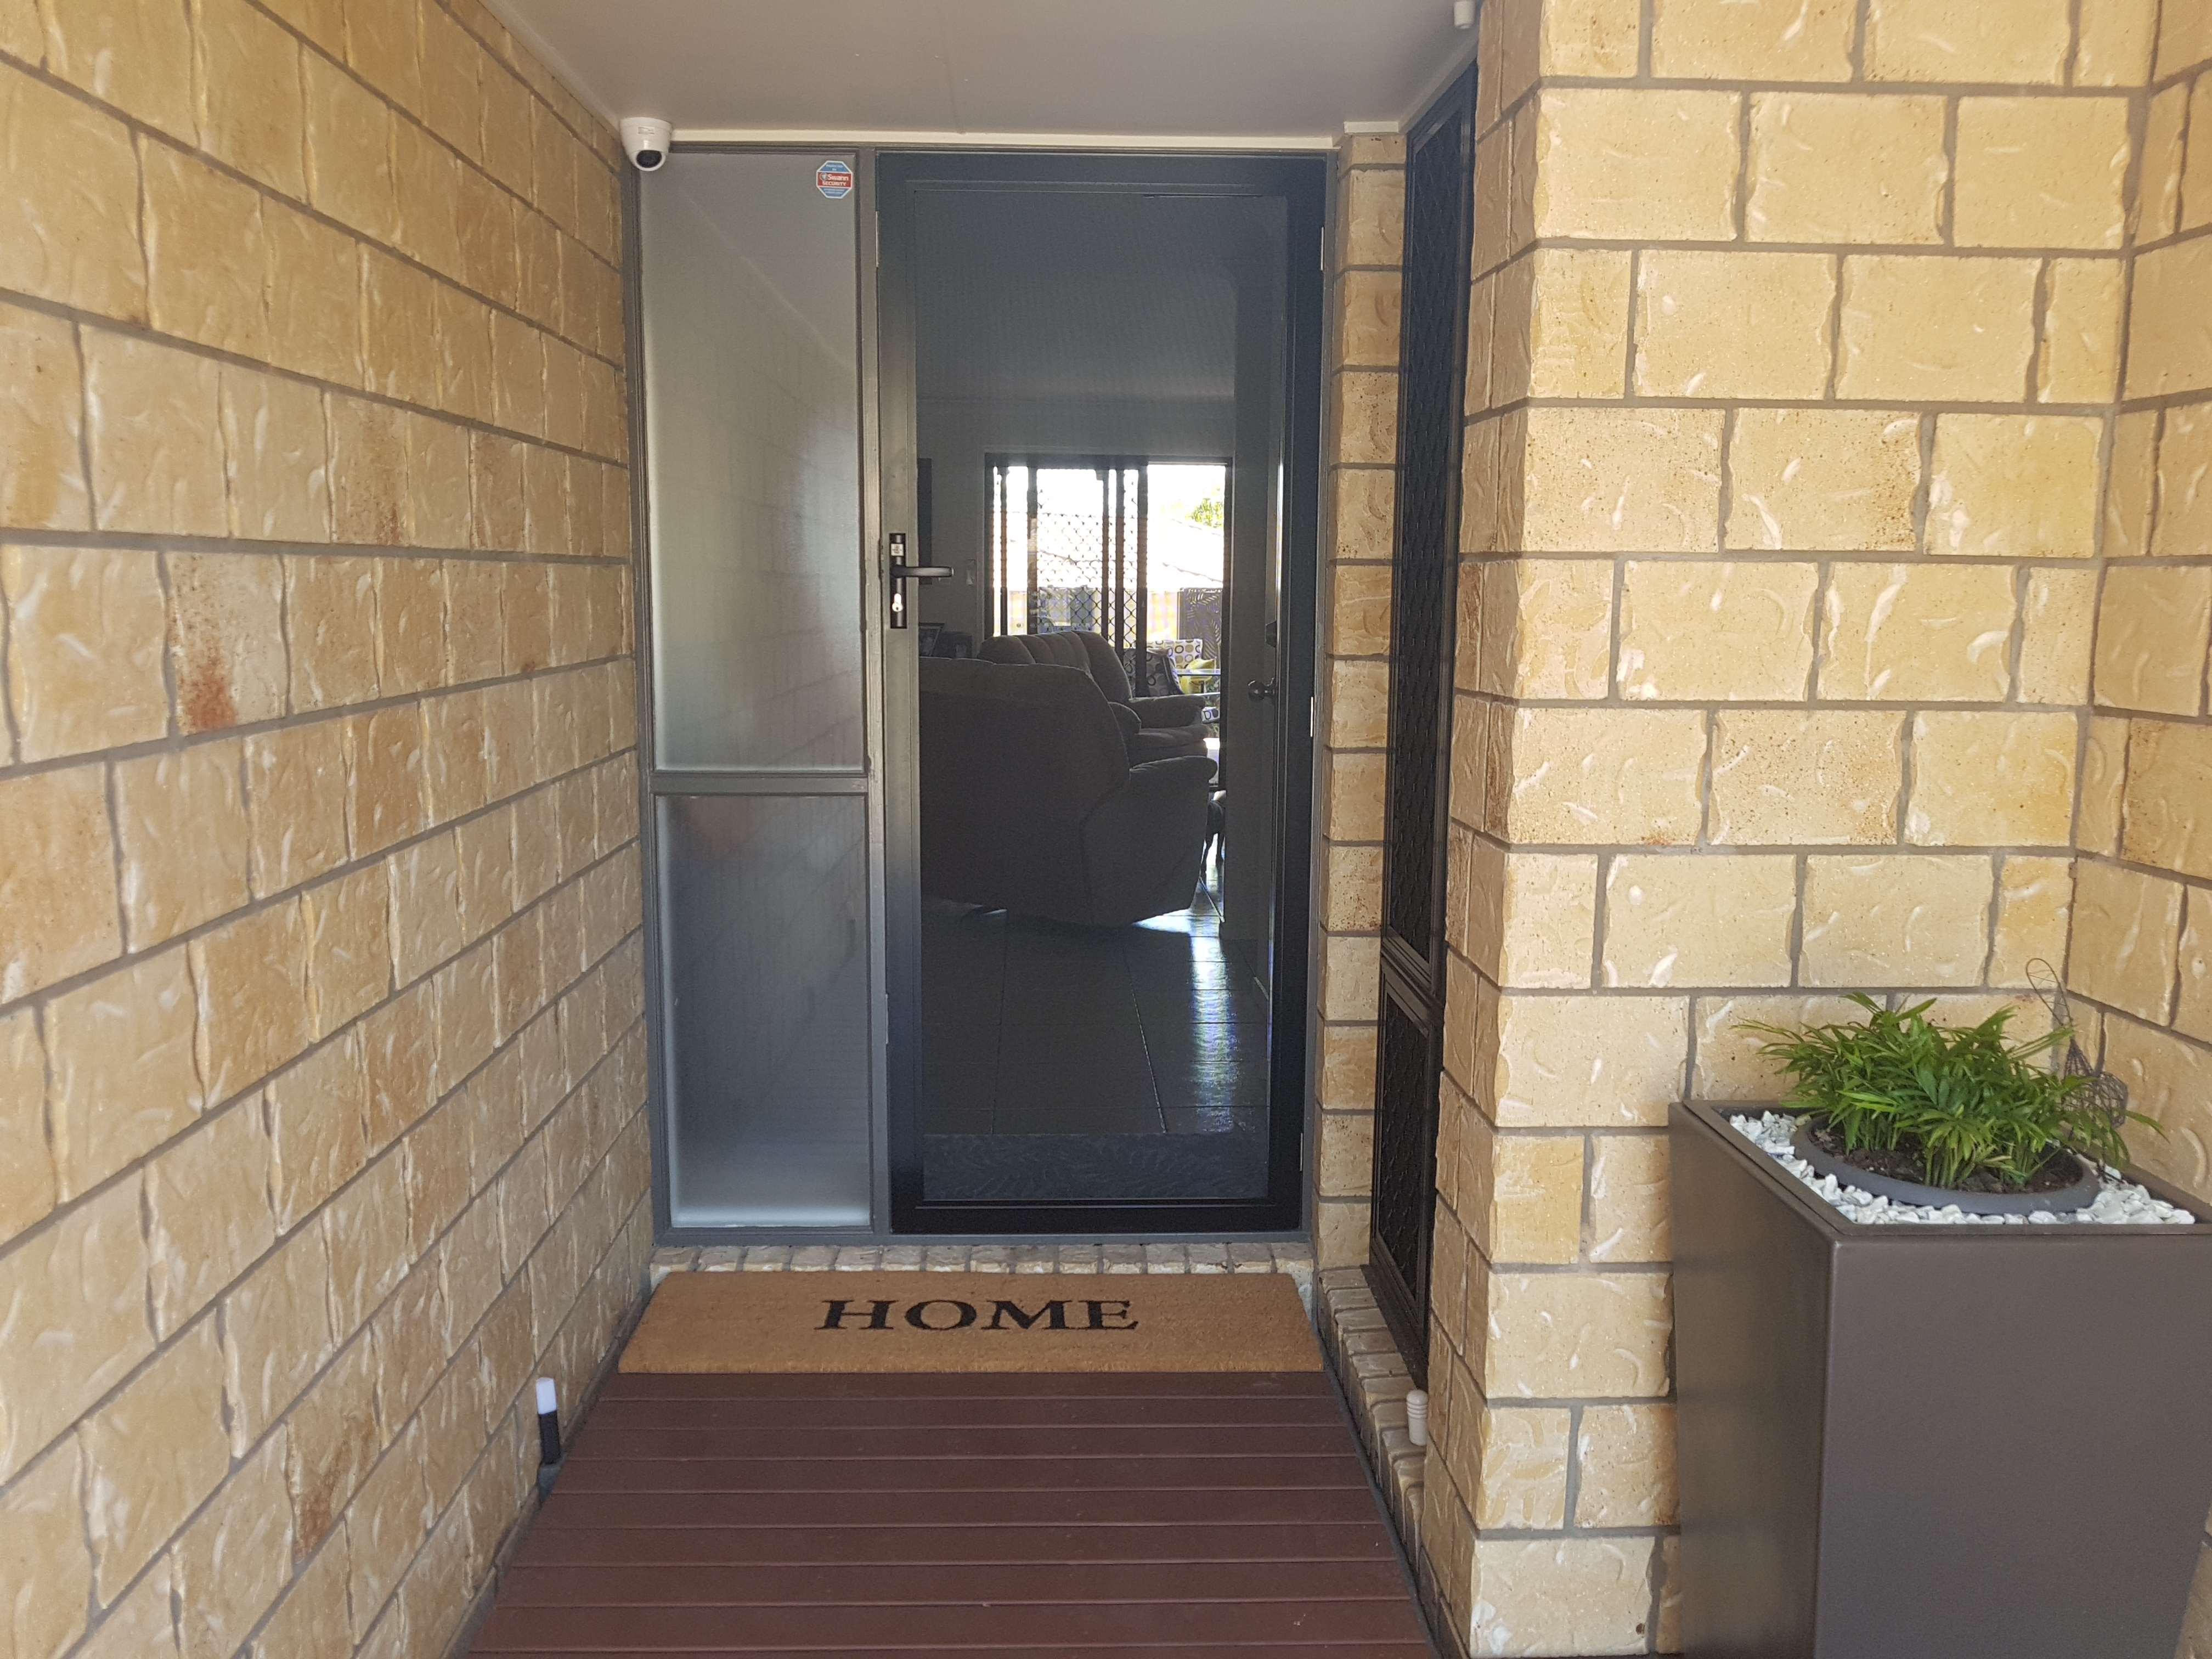 Security doors in stainless steel mesh allow breezes into your home